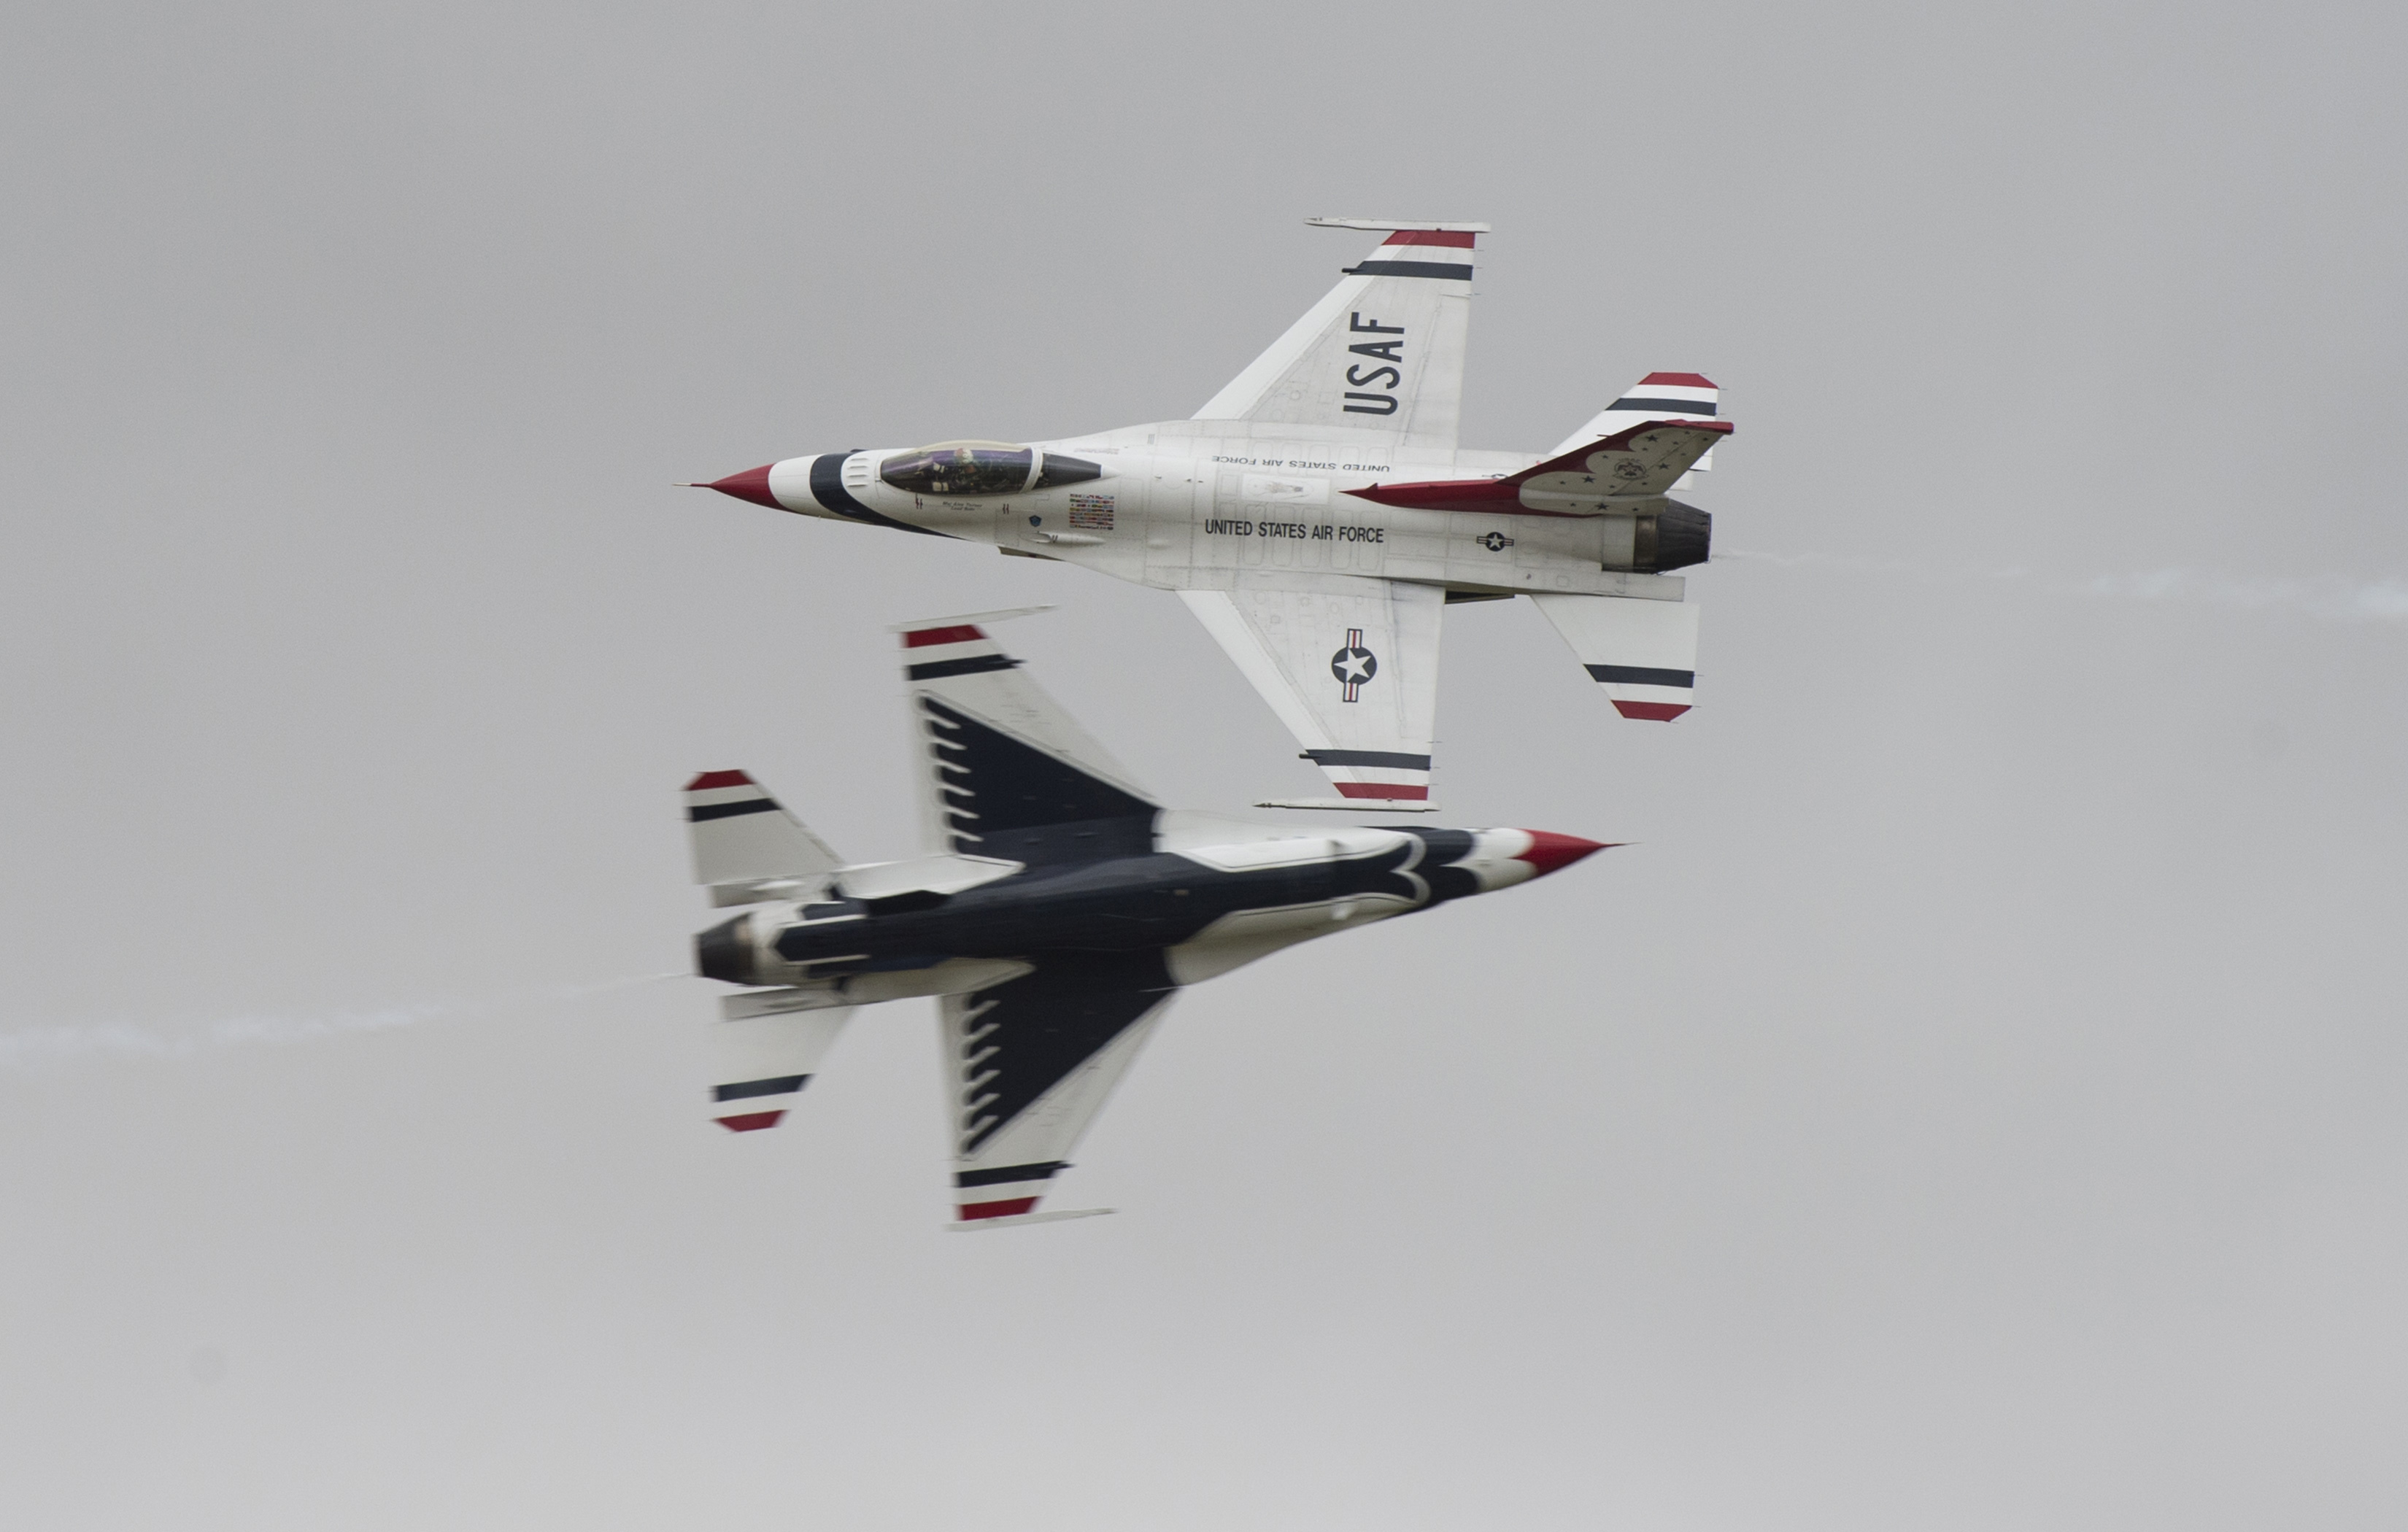 FAIRFORD, United Kingdom – Two U.S. Air Force Thunderbird F-16 aircraft fly past spectators during the 2017 Royal International Air Tattoo (RIAT) located at RAF Fairford, United Kingdom, on July 15, 2017. This year commemorates the U.S. Air Force's 70th Anniversary which was highlighted during RIAT by displaying its lineage and advancements in military aircraft. (U.S. Air Force Photo by Tech. Sgt. Brian Kimball)